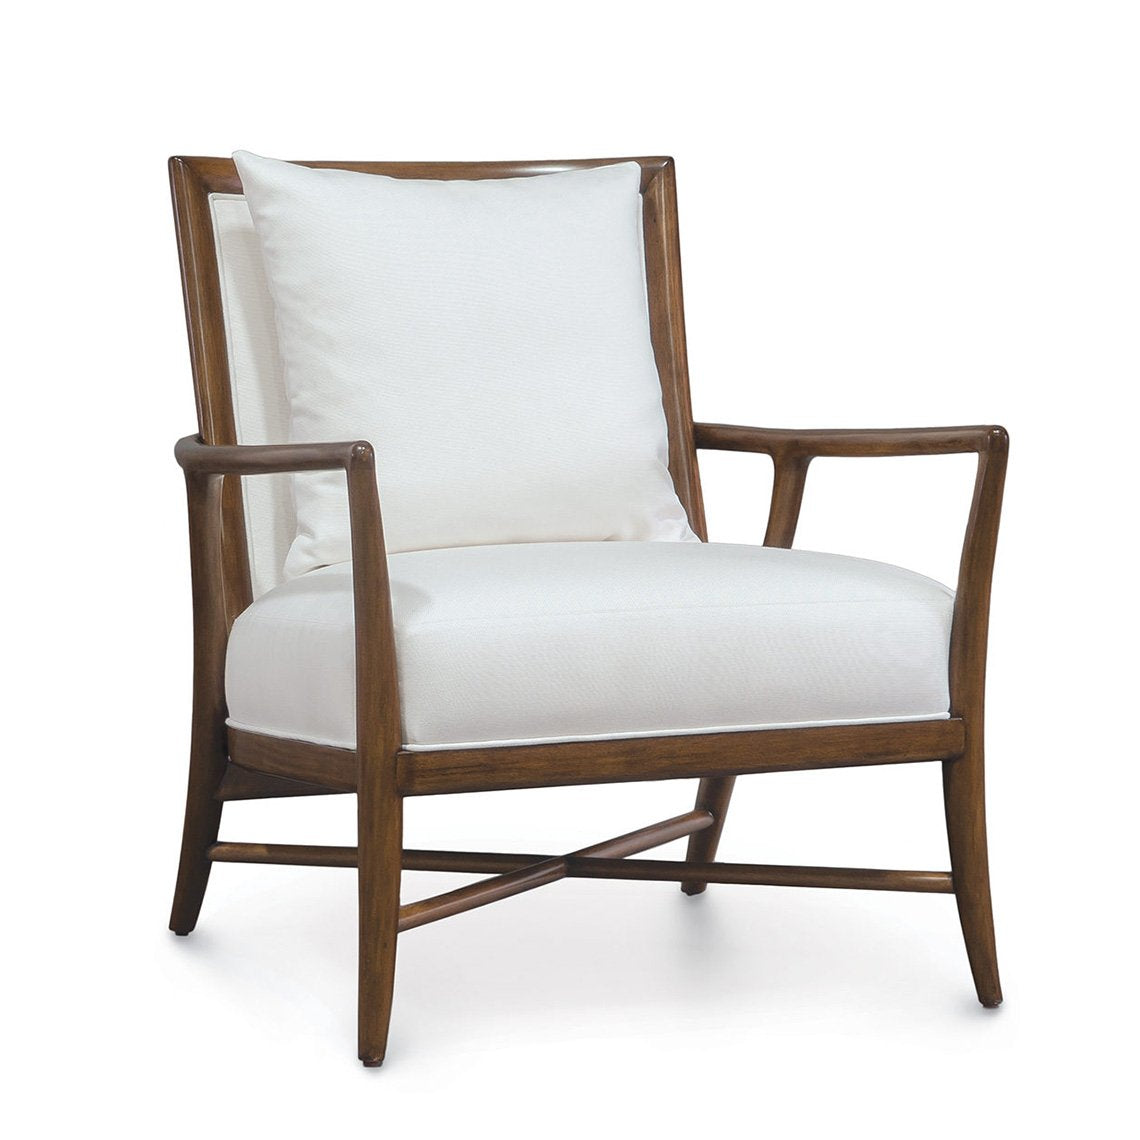 Davenport Lounge Chair